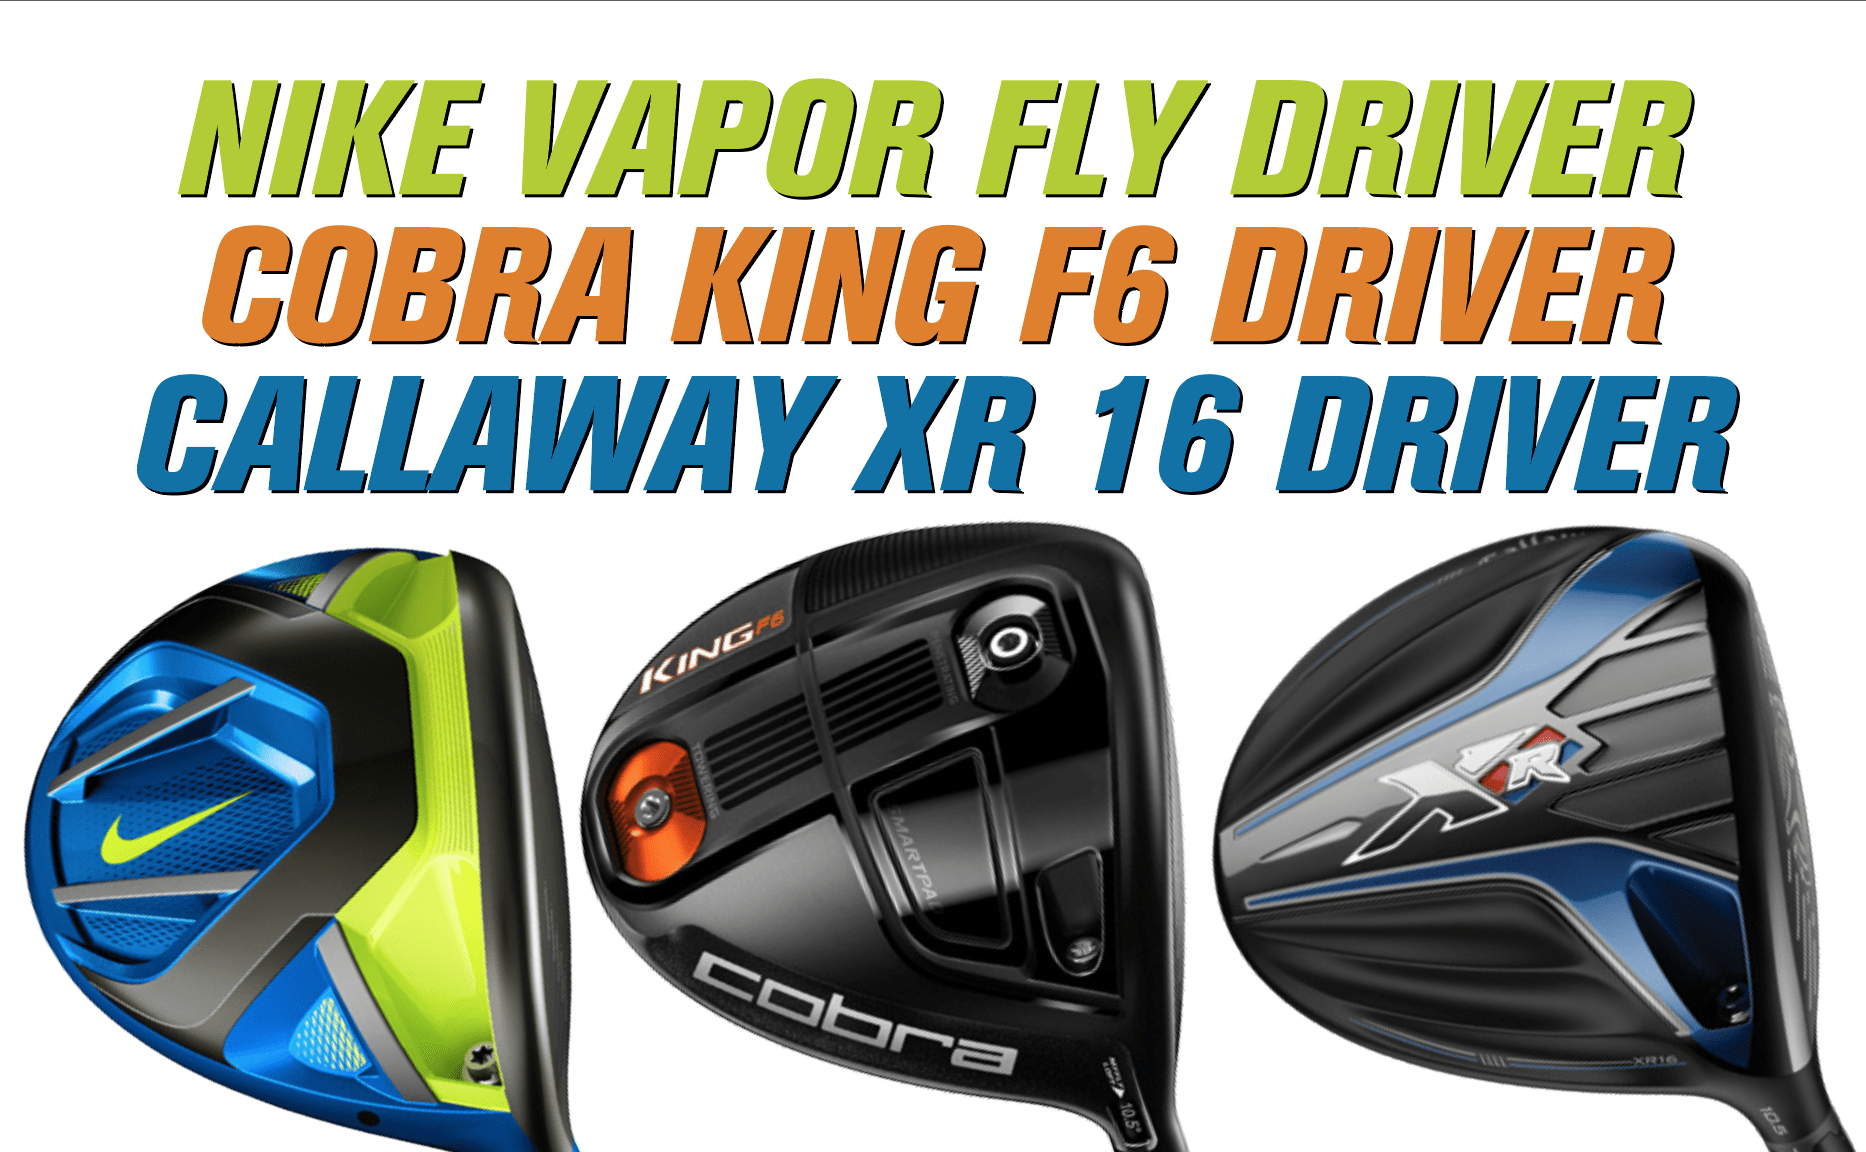 Nike Vapor Fly vs Cobra King F6 vs Callaway XR 16, Callaway XR16, Cobra F6, Nike Vapor Fly